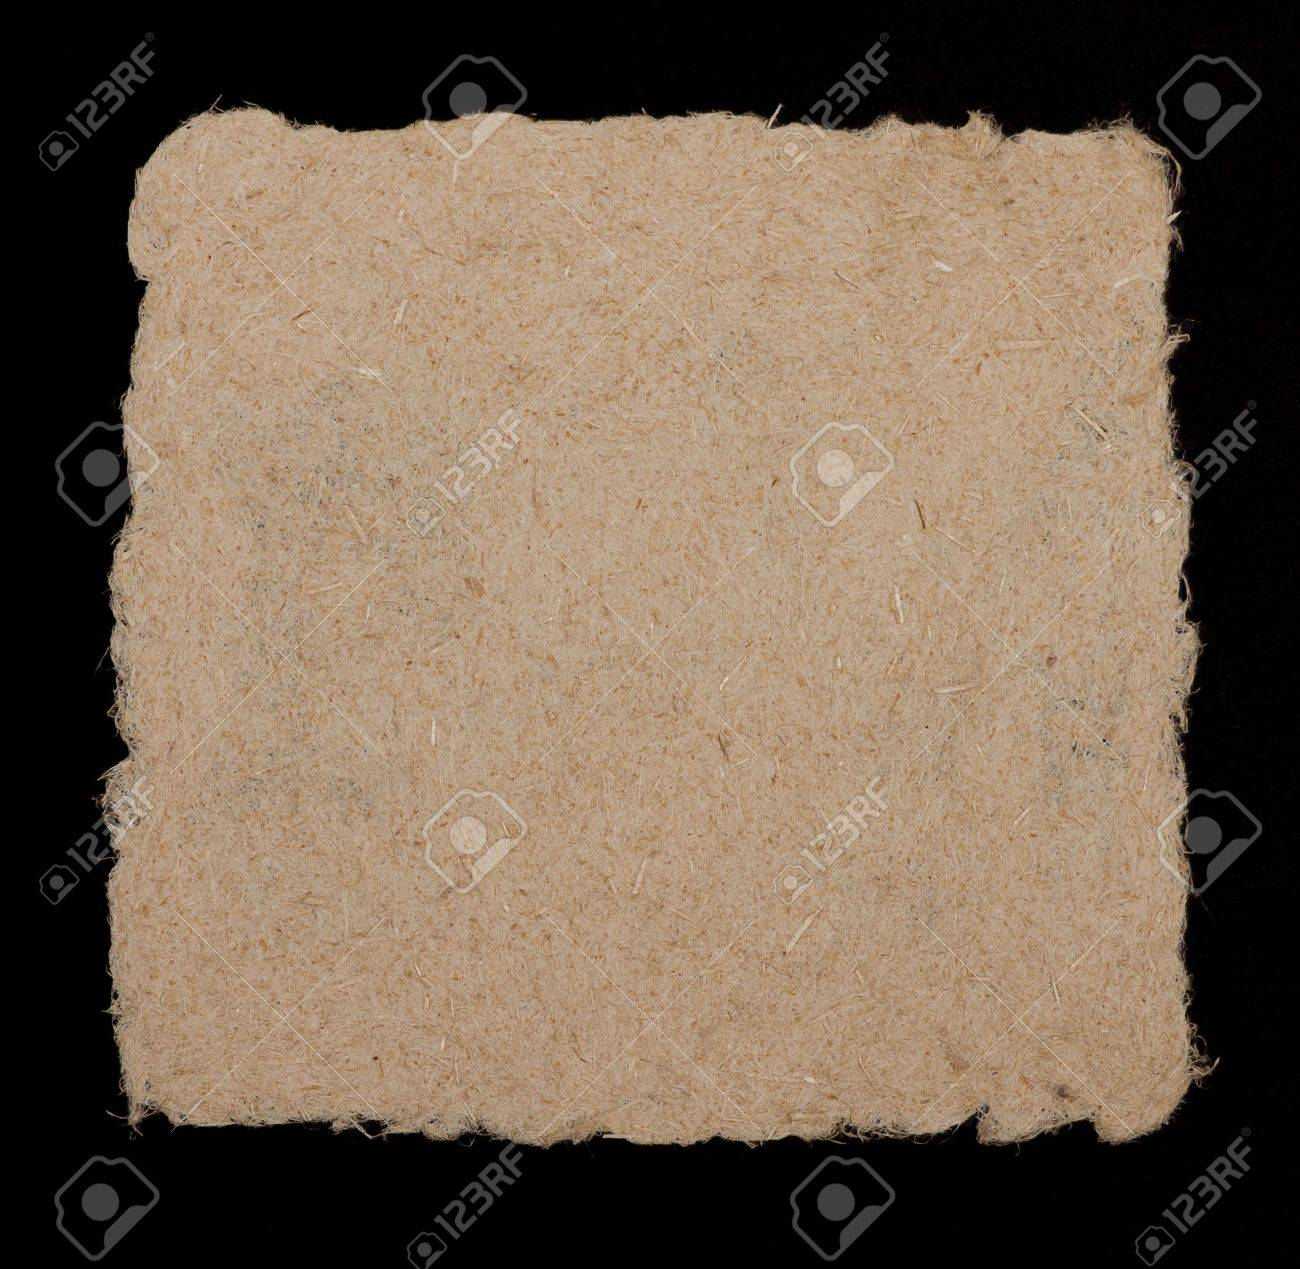 Paspartoe Hema Hand Made Paper From Hemp Fibers Coarse Rough Edged And Fibrous Isolated On Black Background